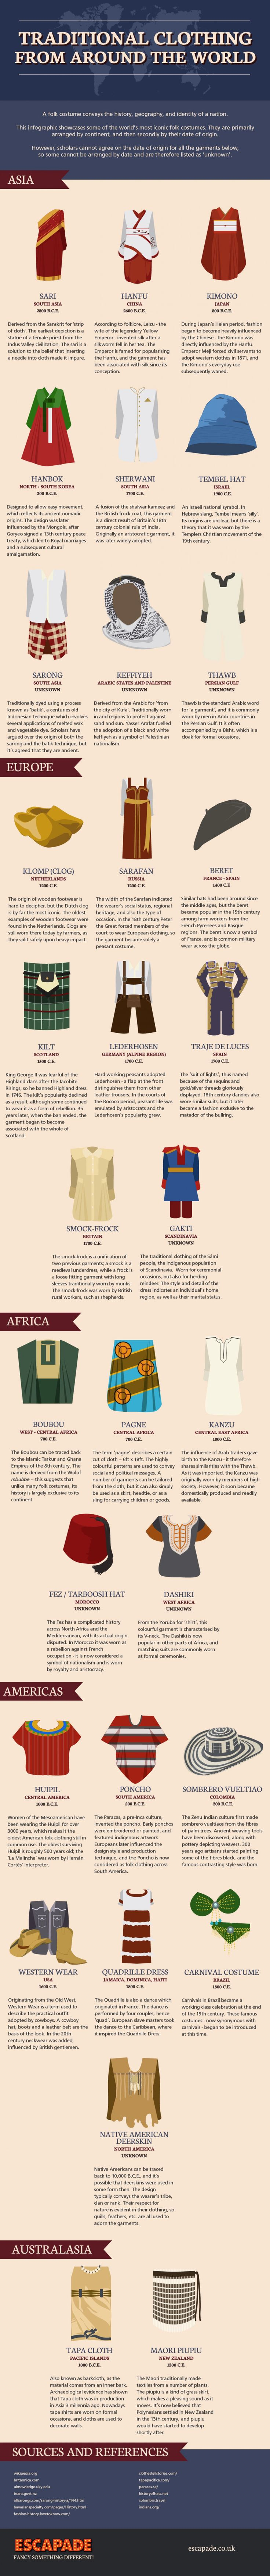 Traditional Clothing From Around the World Infographic